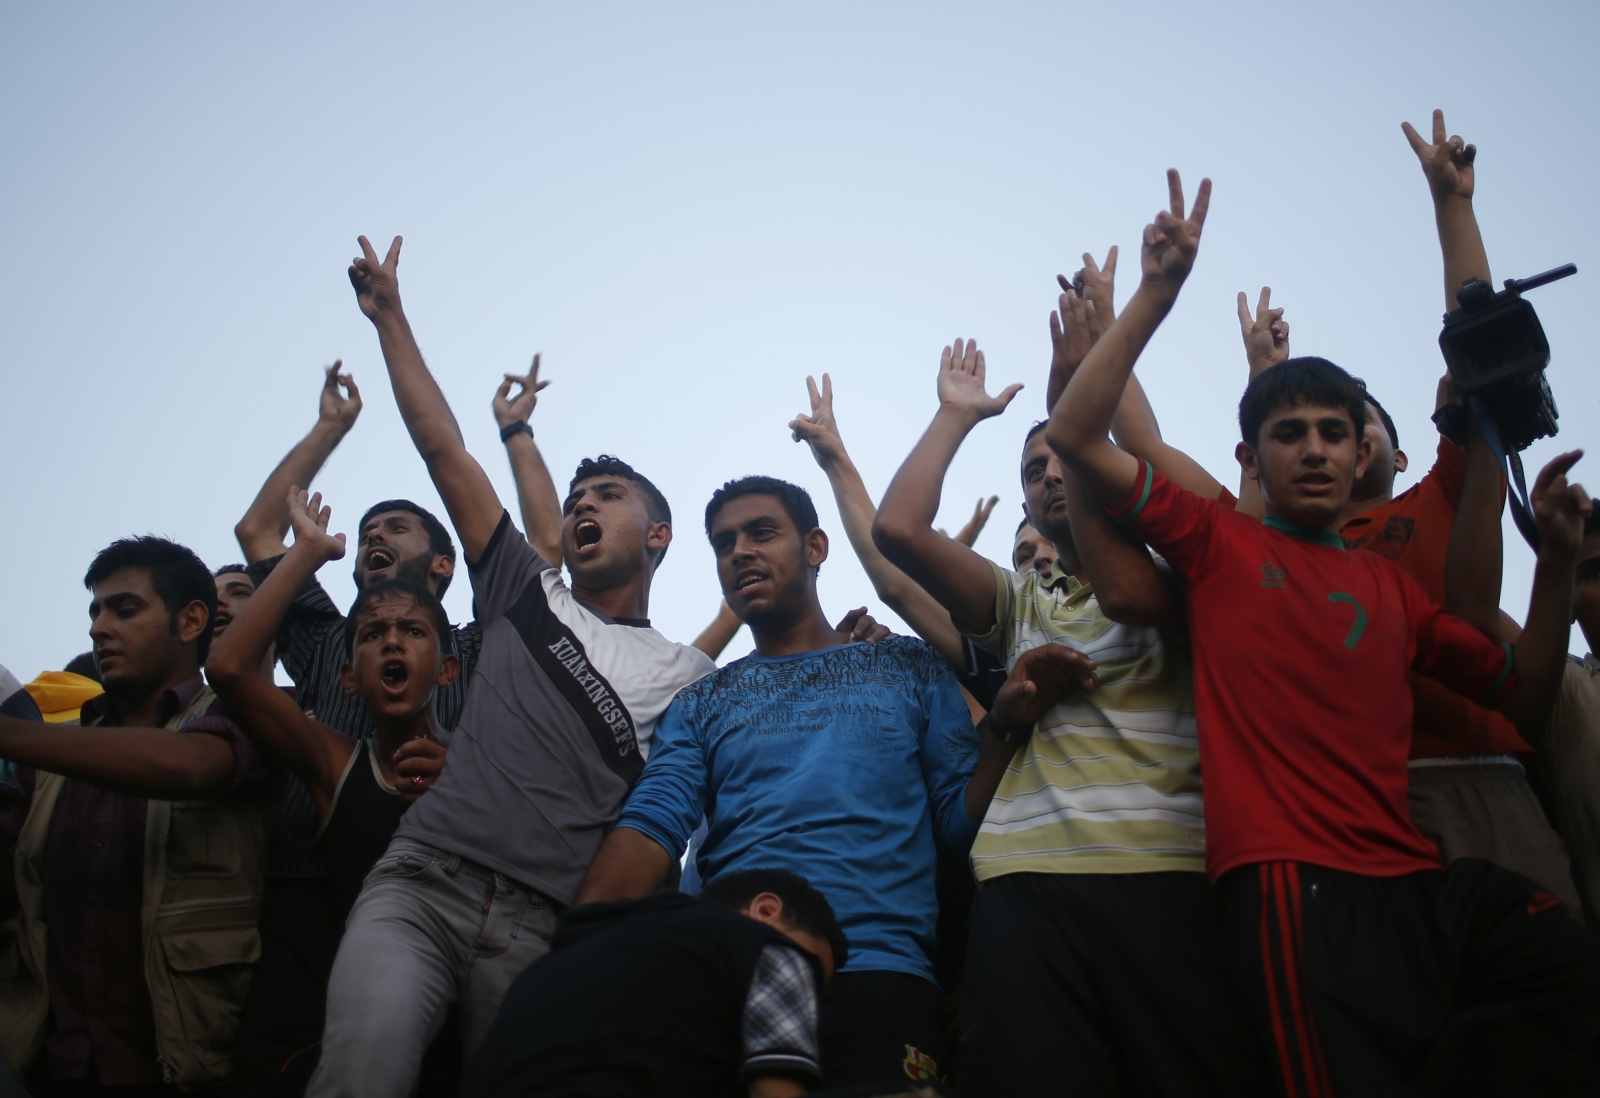 Young men celebrate peace for Gaza in an Israel / Palestine ceasefire